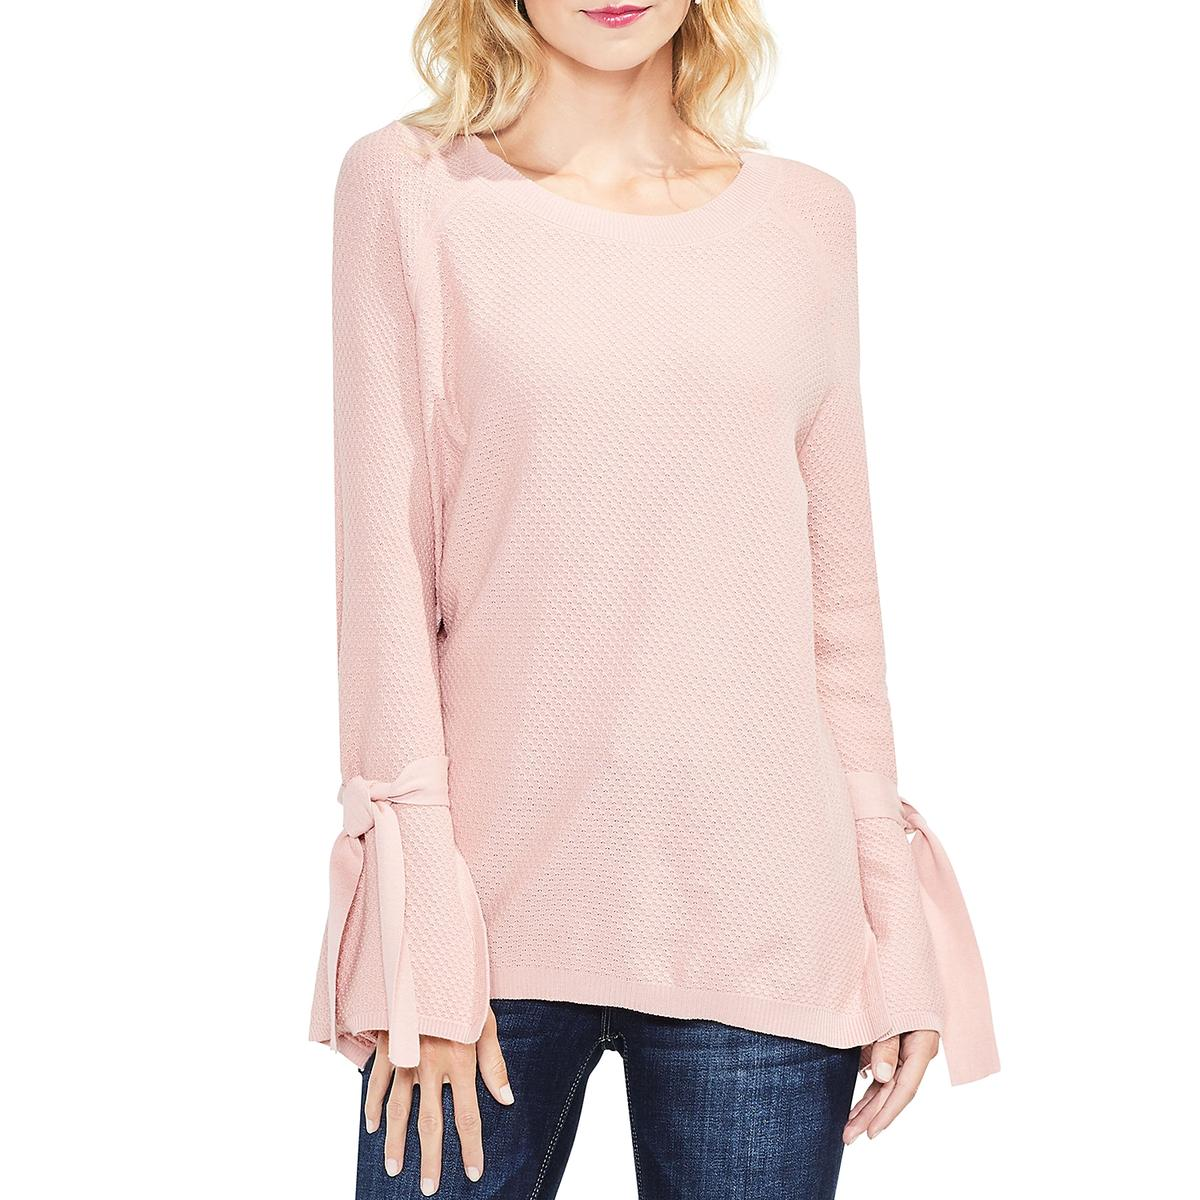 266f55c6827 Details about Two by Vince Camuto Womens Knit Tie Sleeves Pullover Sweater  Top BHFO 8125